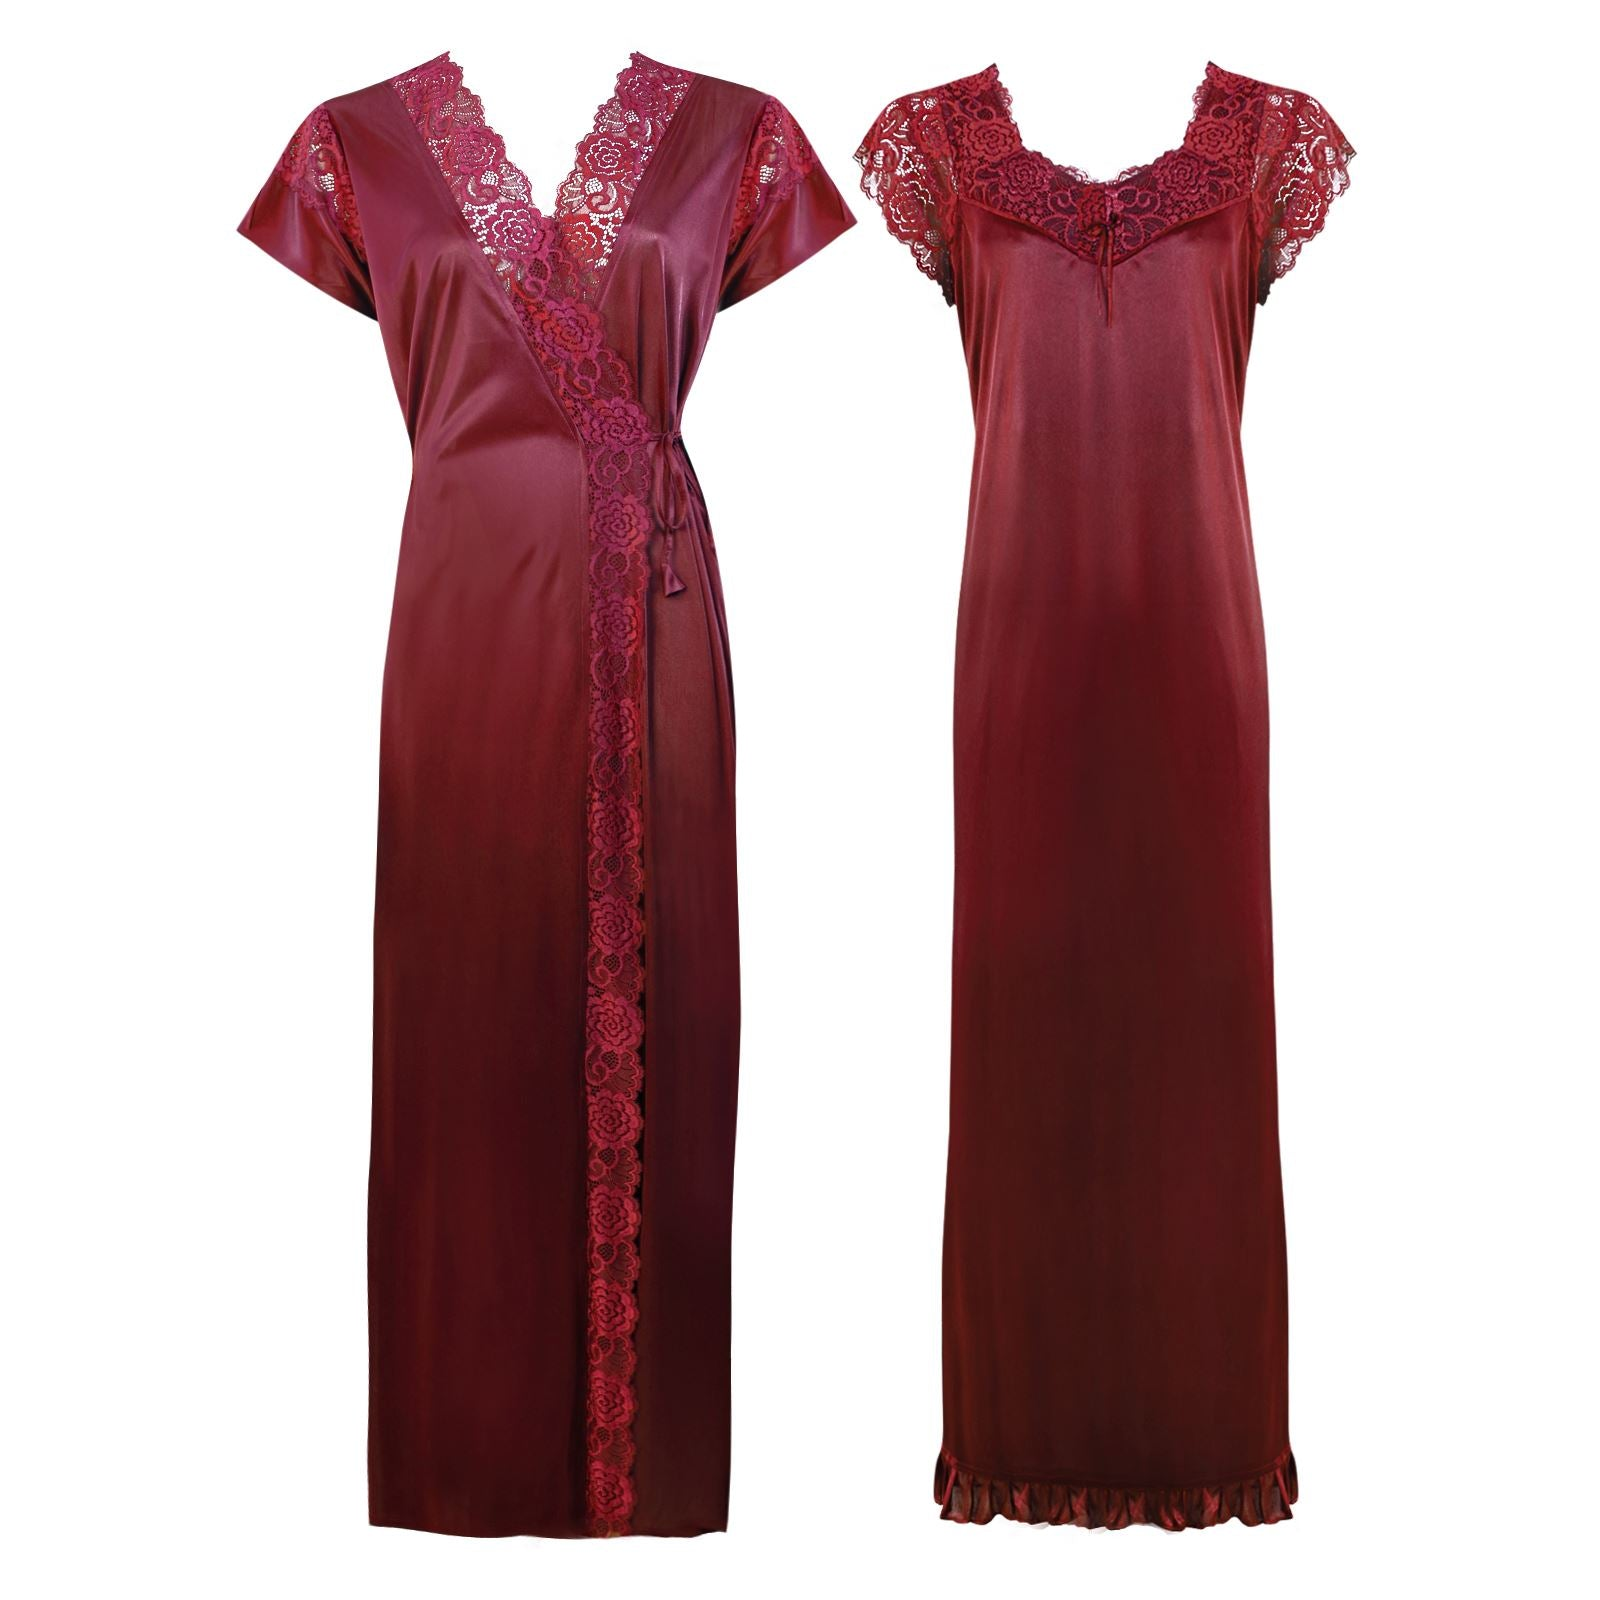 Color: Deep Red 2 Pc Satin Lace Nighty and Robe Size: One Size: Regular (8-14)